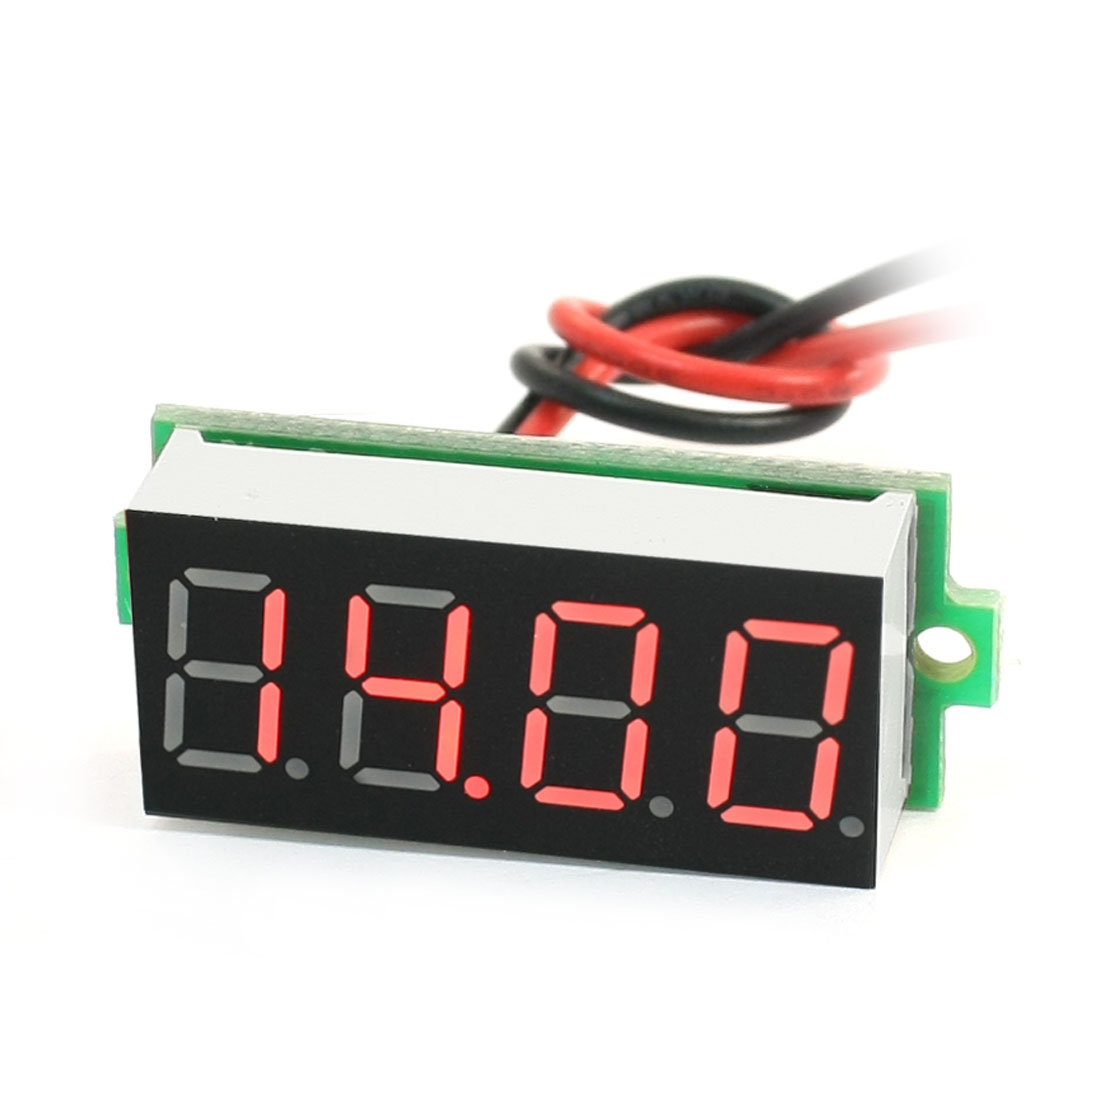 0-36-Red-LED-Display-Panel-Meter-2Wire-Digital-Voltmeter-DC3-5-30V